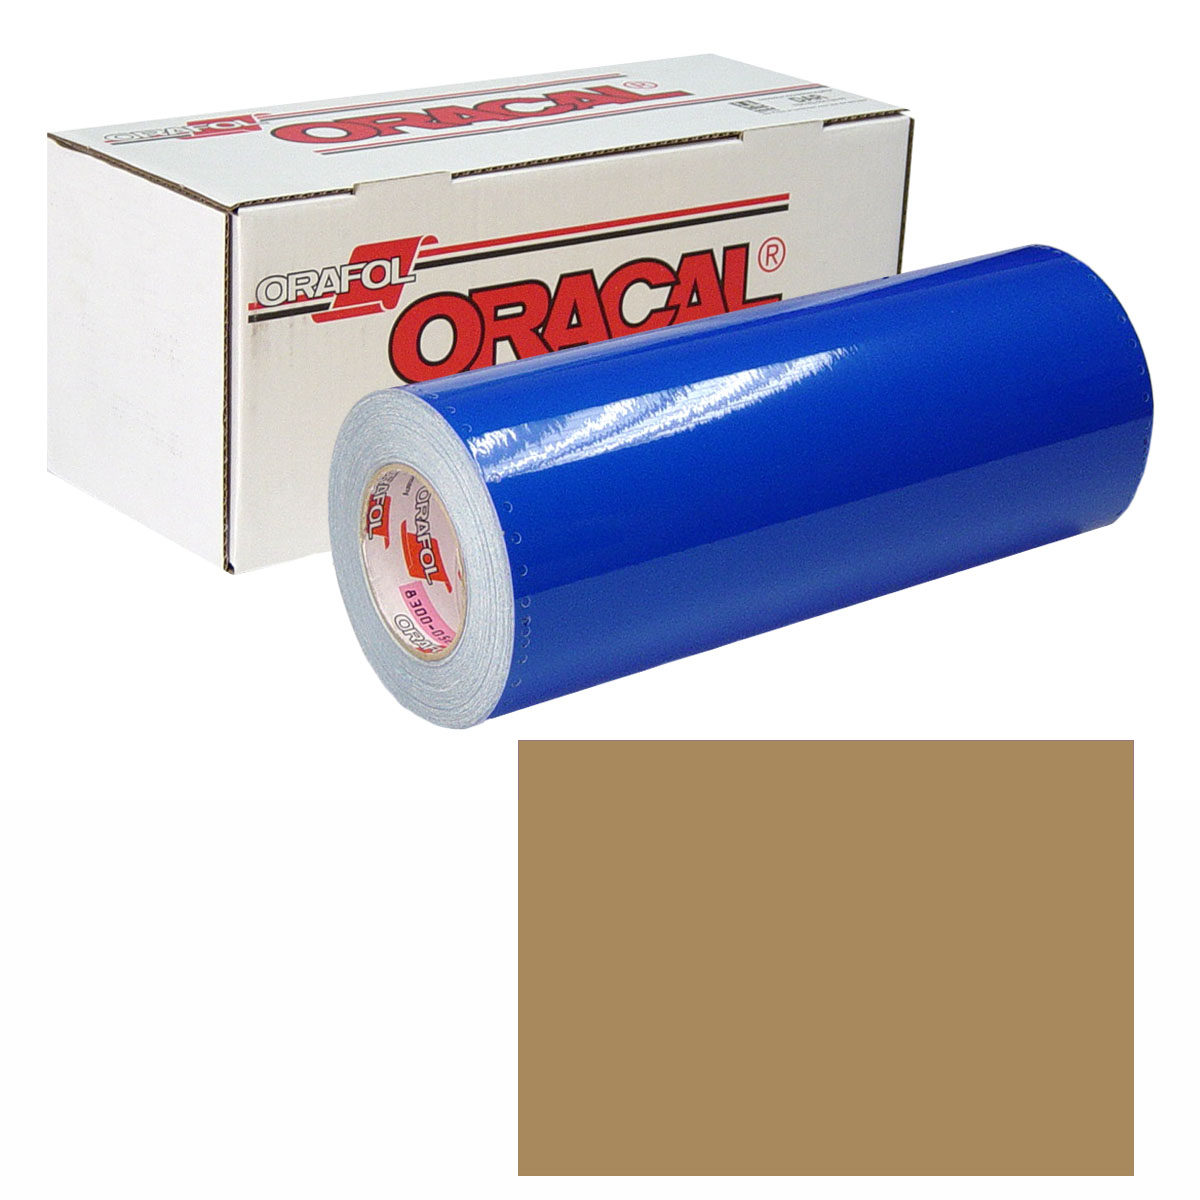 ORACAL 631 15In X 10Yd 081 Light Brown